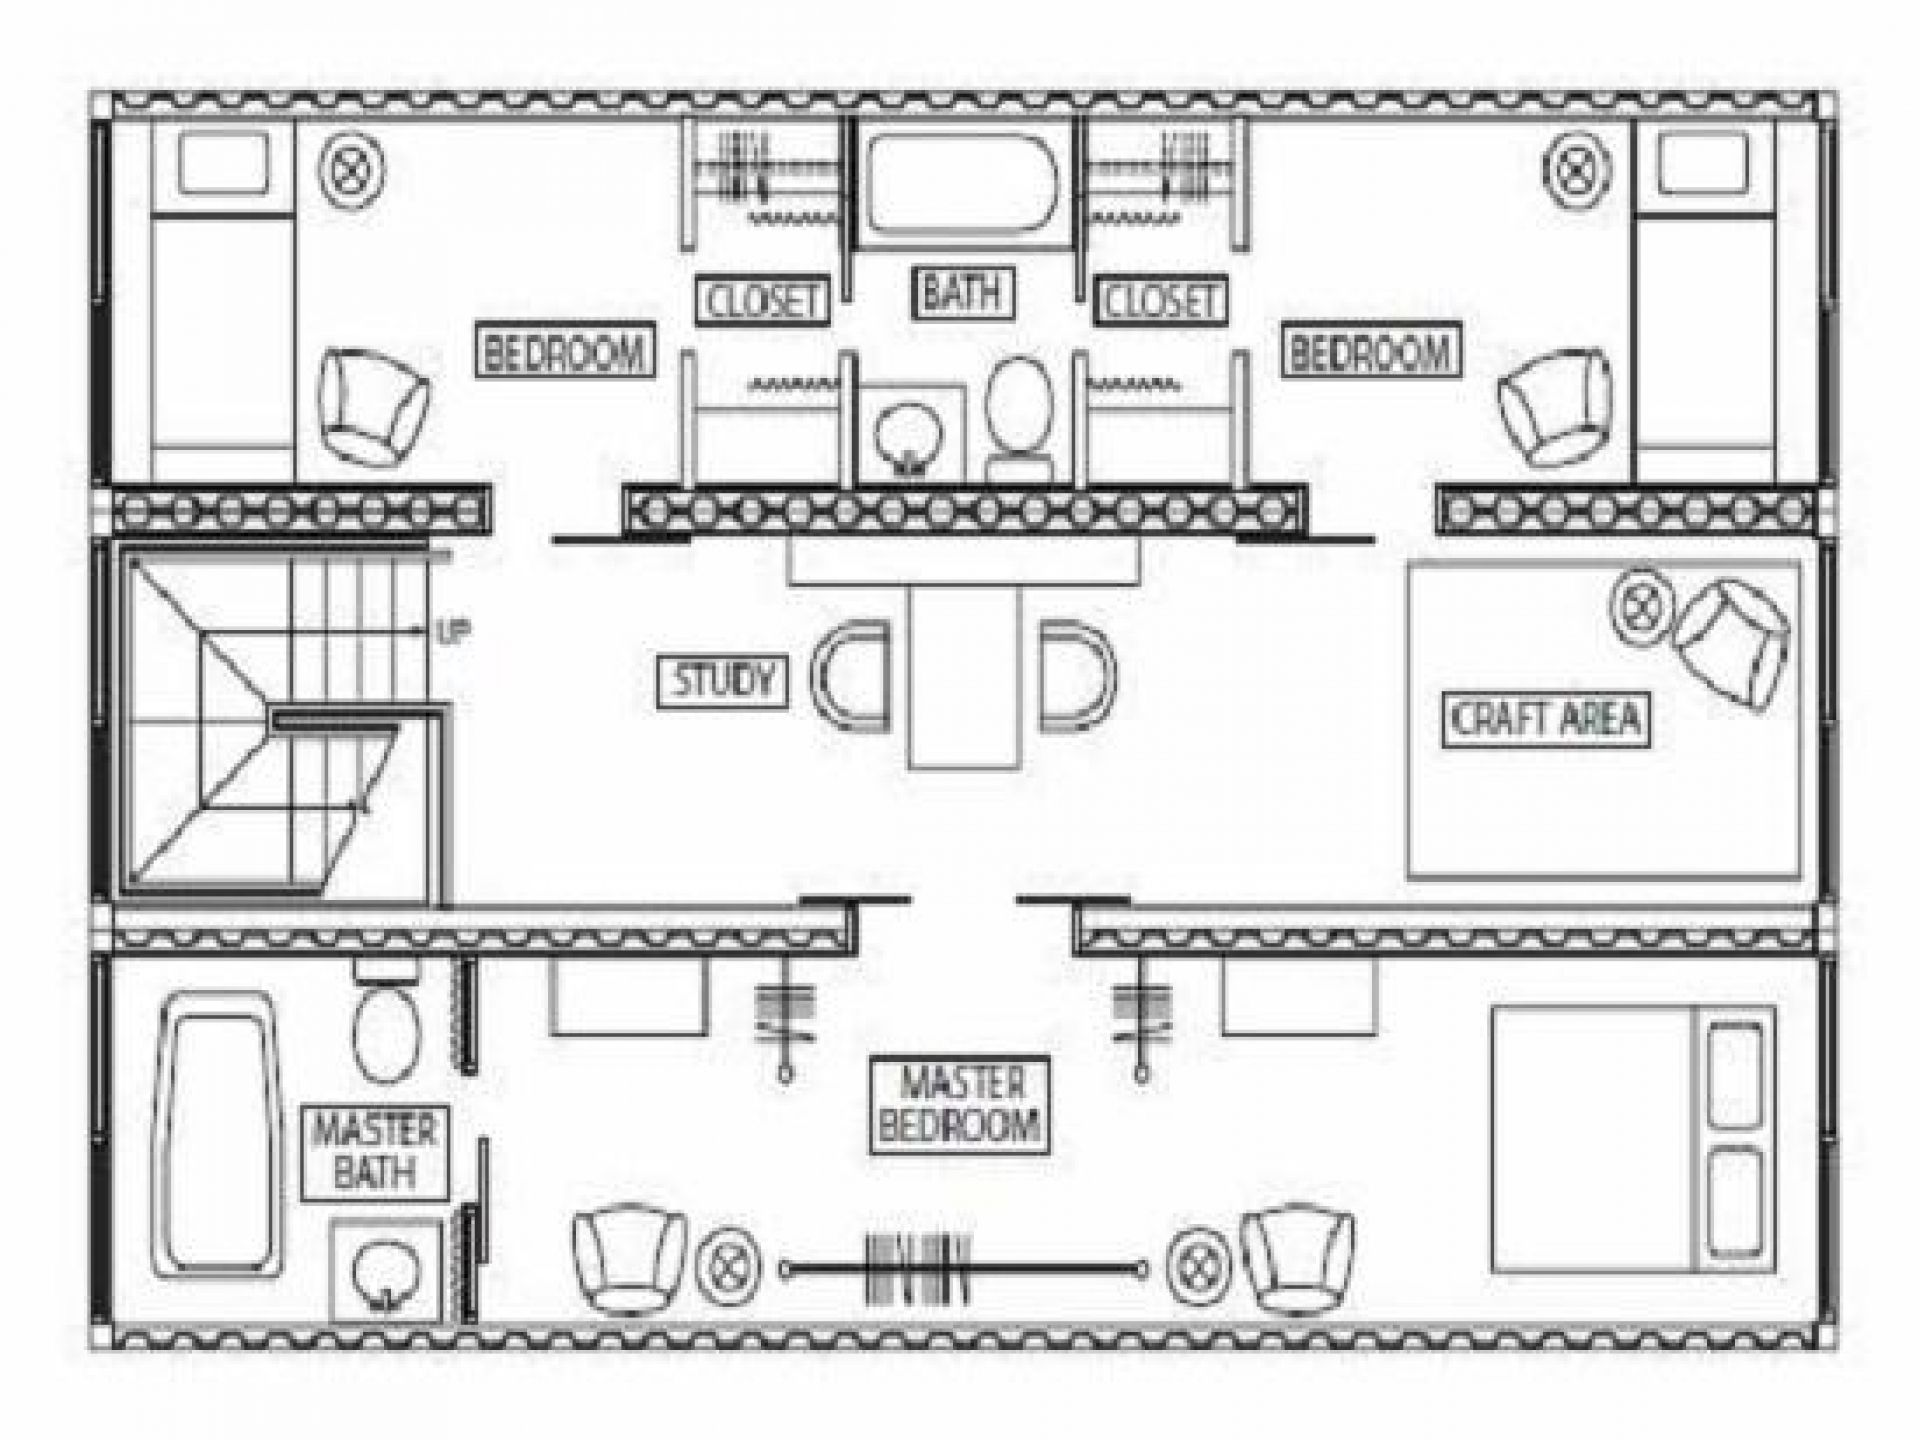 Best Kitchen Gallery: Amazing Shipping Container Homes Plans 3 Shipping Container Home of Shipping Container Homes Floor Plans  on rachelxblog.com